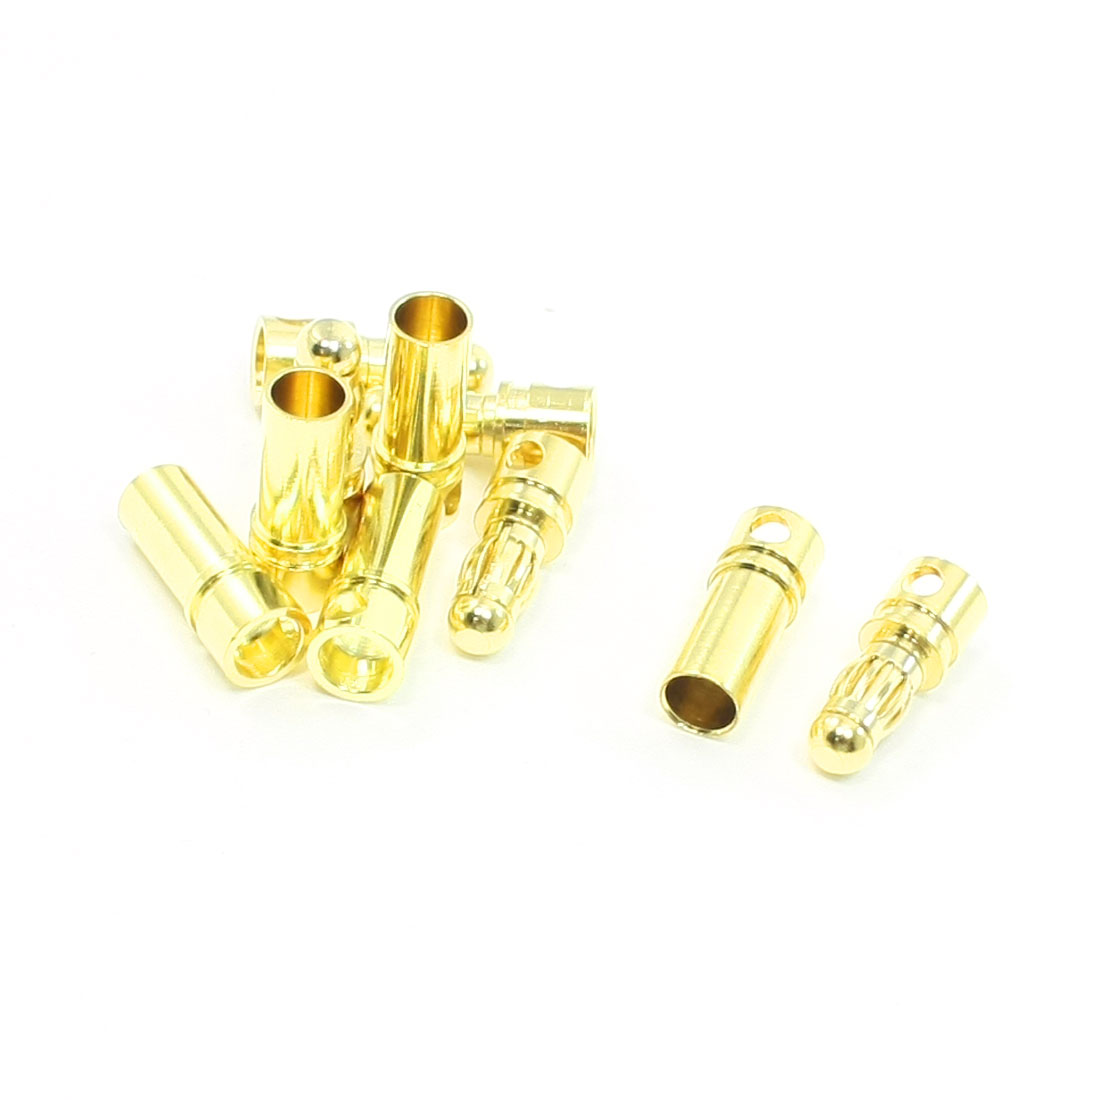 5 Pairs Female Male Connector Repair Part 3.5mm for RC DIY